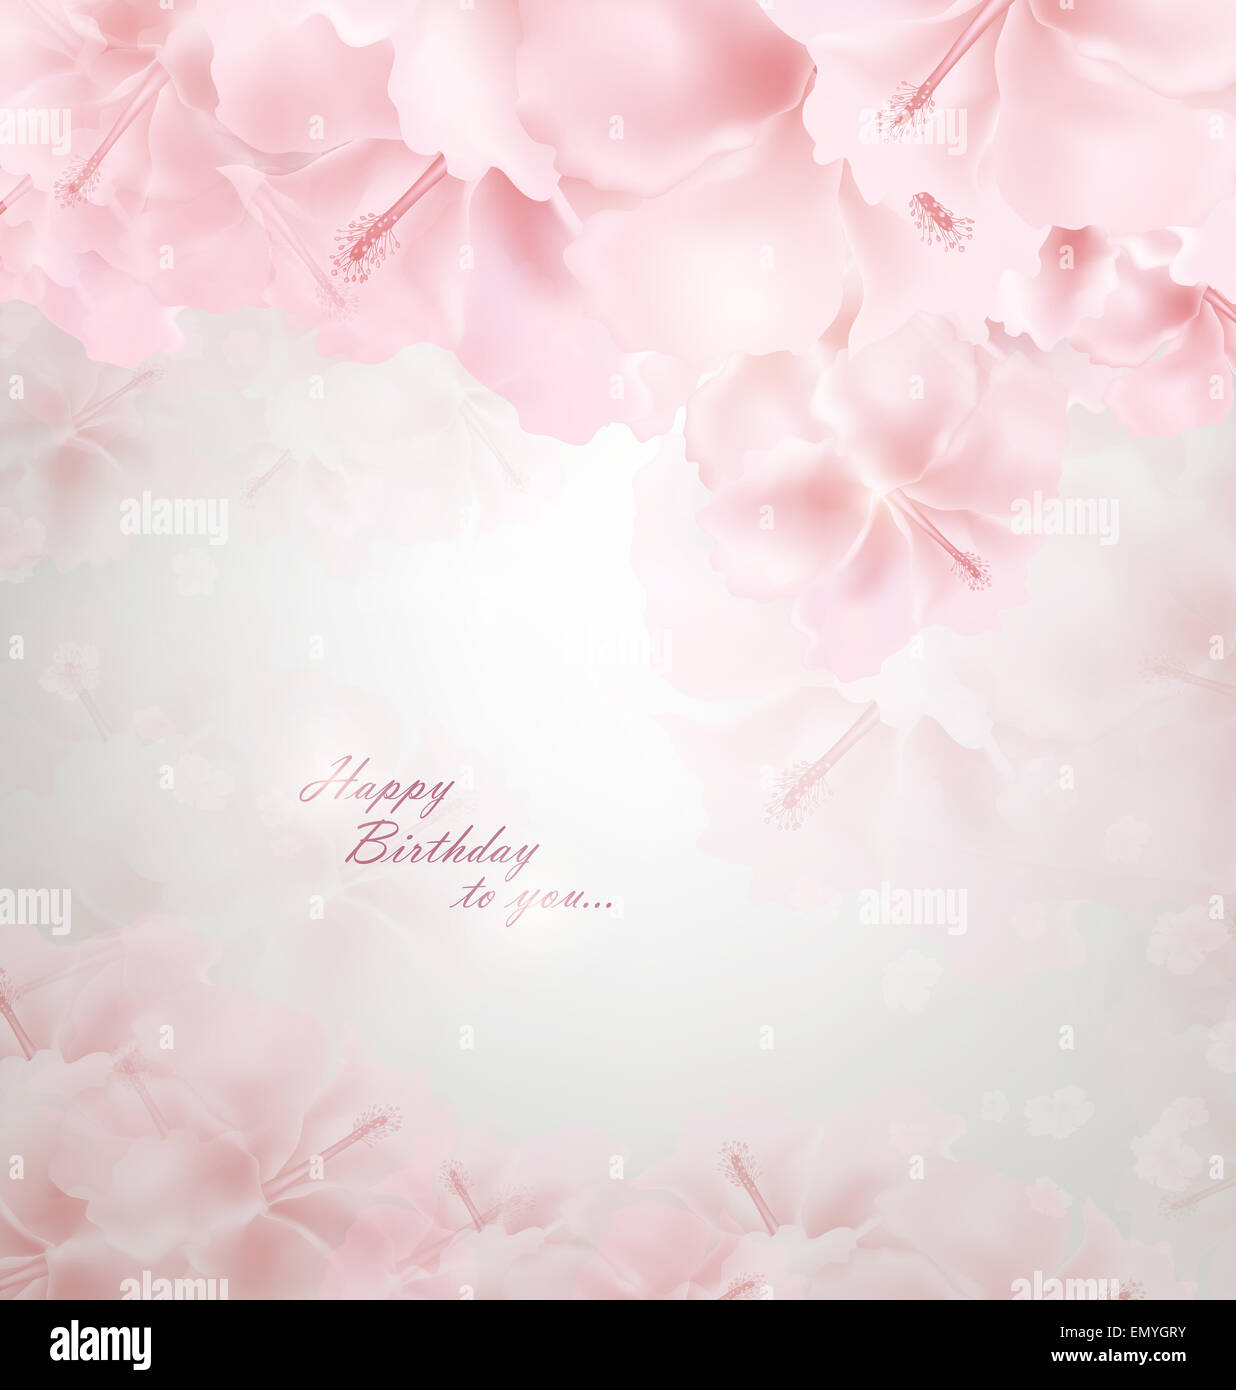 Pastel Floral Background With Happy Birthday Wishes Stock Photo